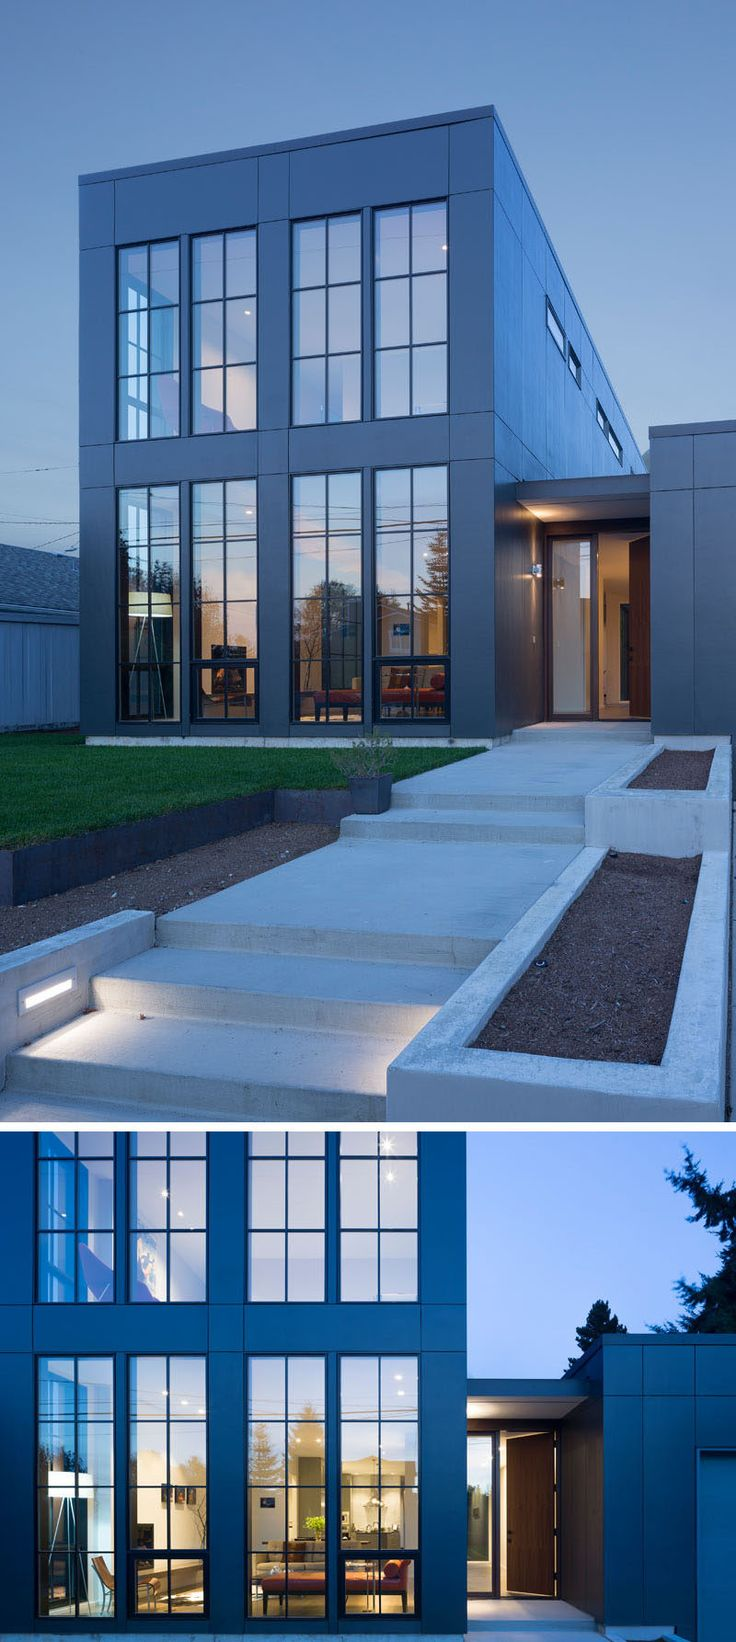 Architecture and interiors design firm Rerucha Studio, have recently completed the Magnolia House in Seattle, Washington, that's been designed with lots of light and a classic yet modern feel.